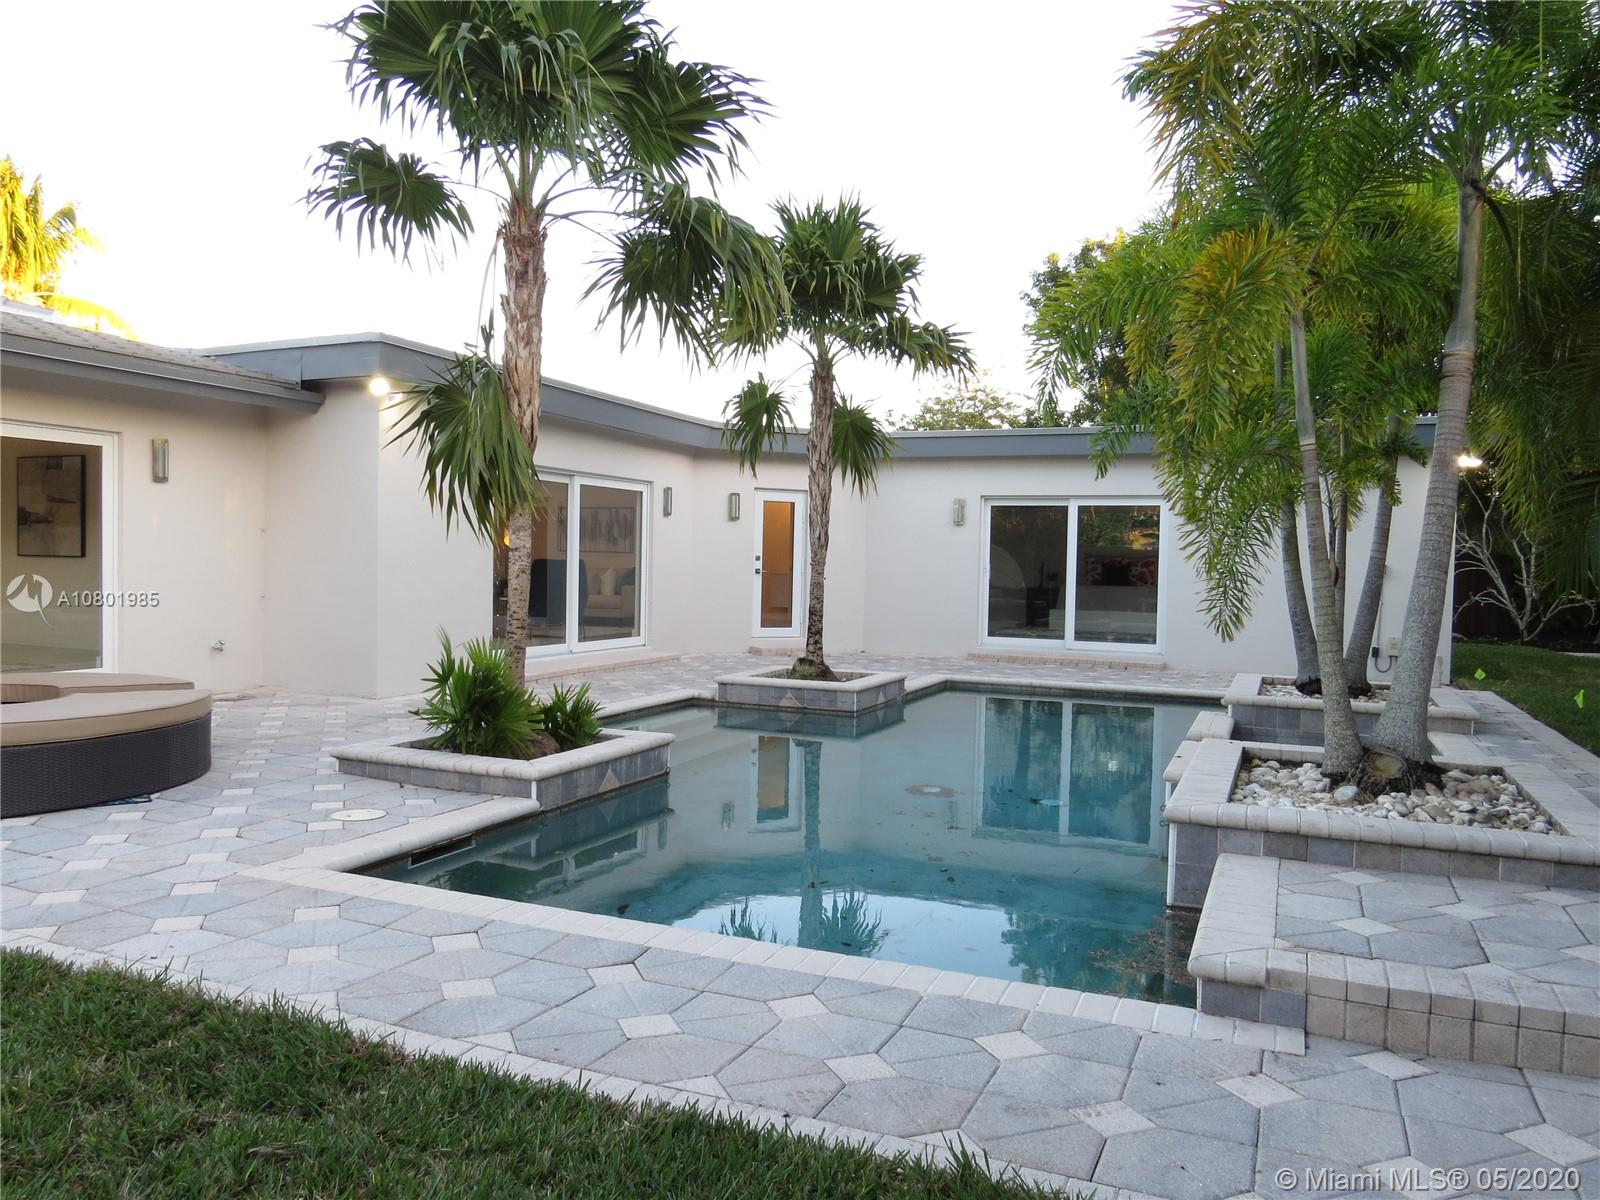 2133 NW 4th Ave, Wilton Manors, FL 33311